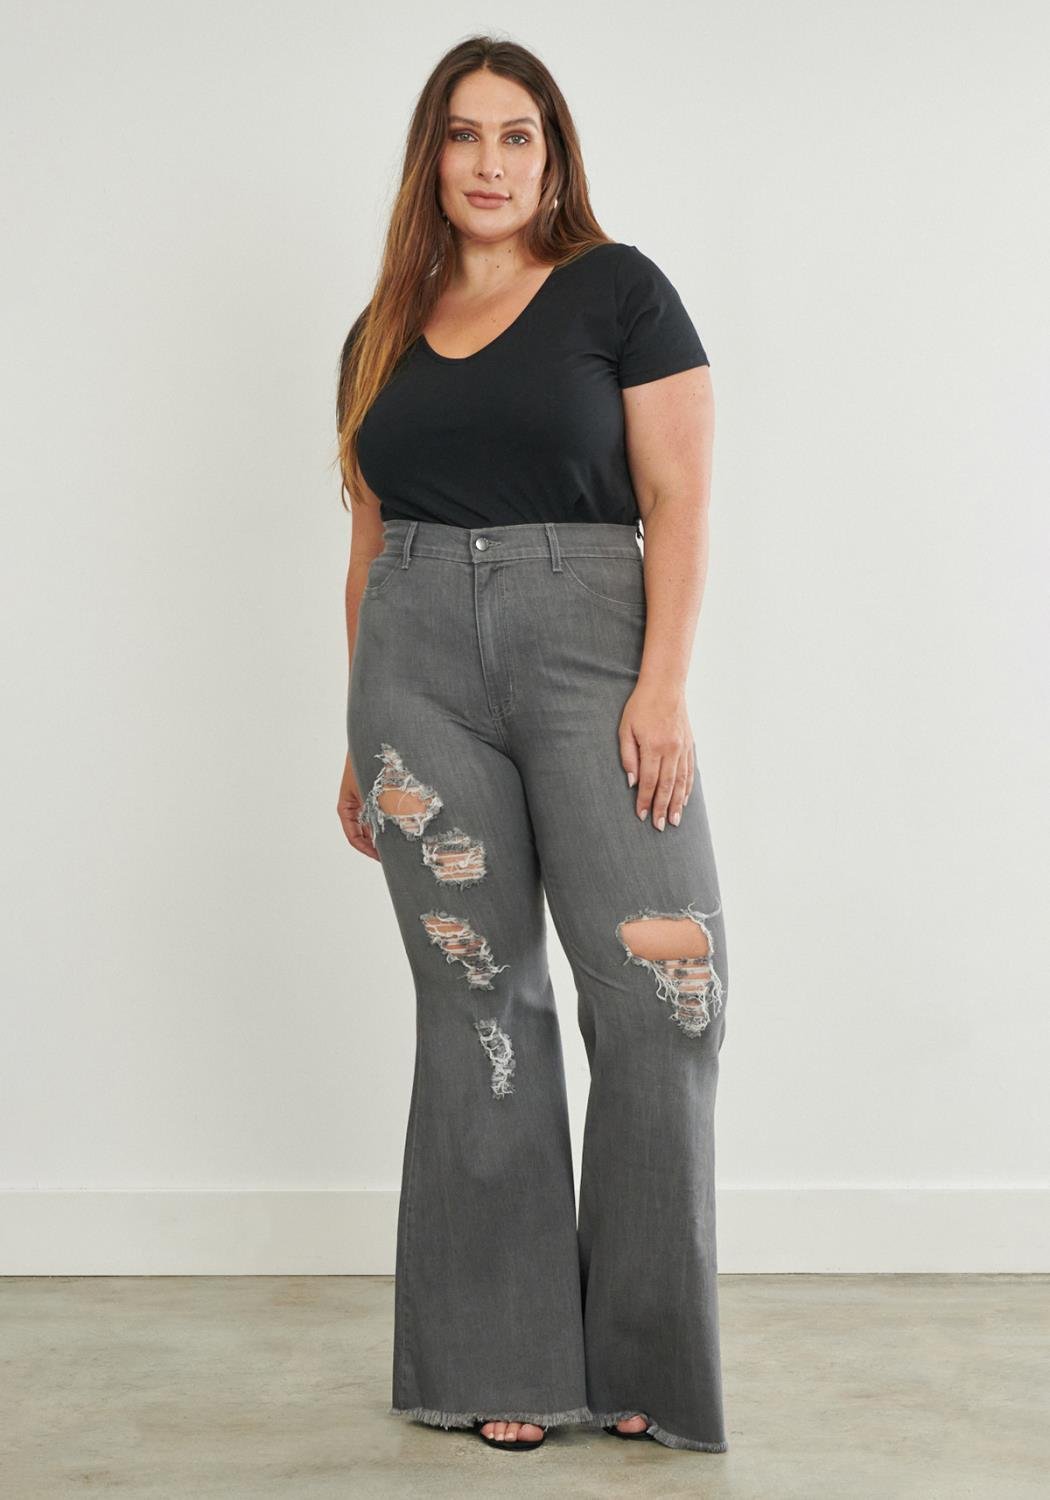 PLUS Too Flare To Care Jeans